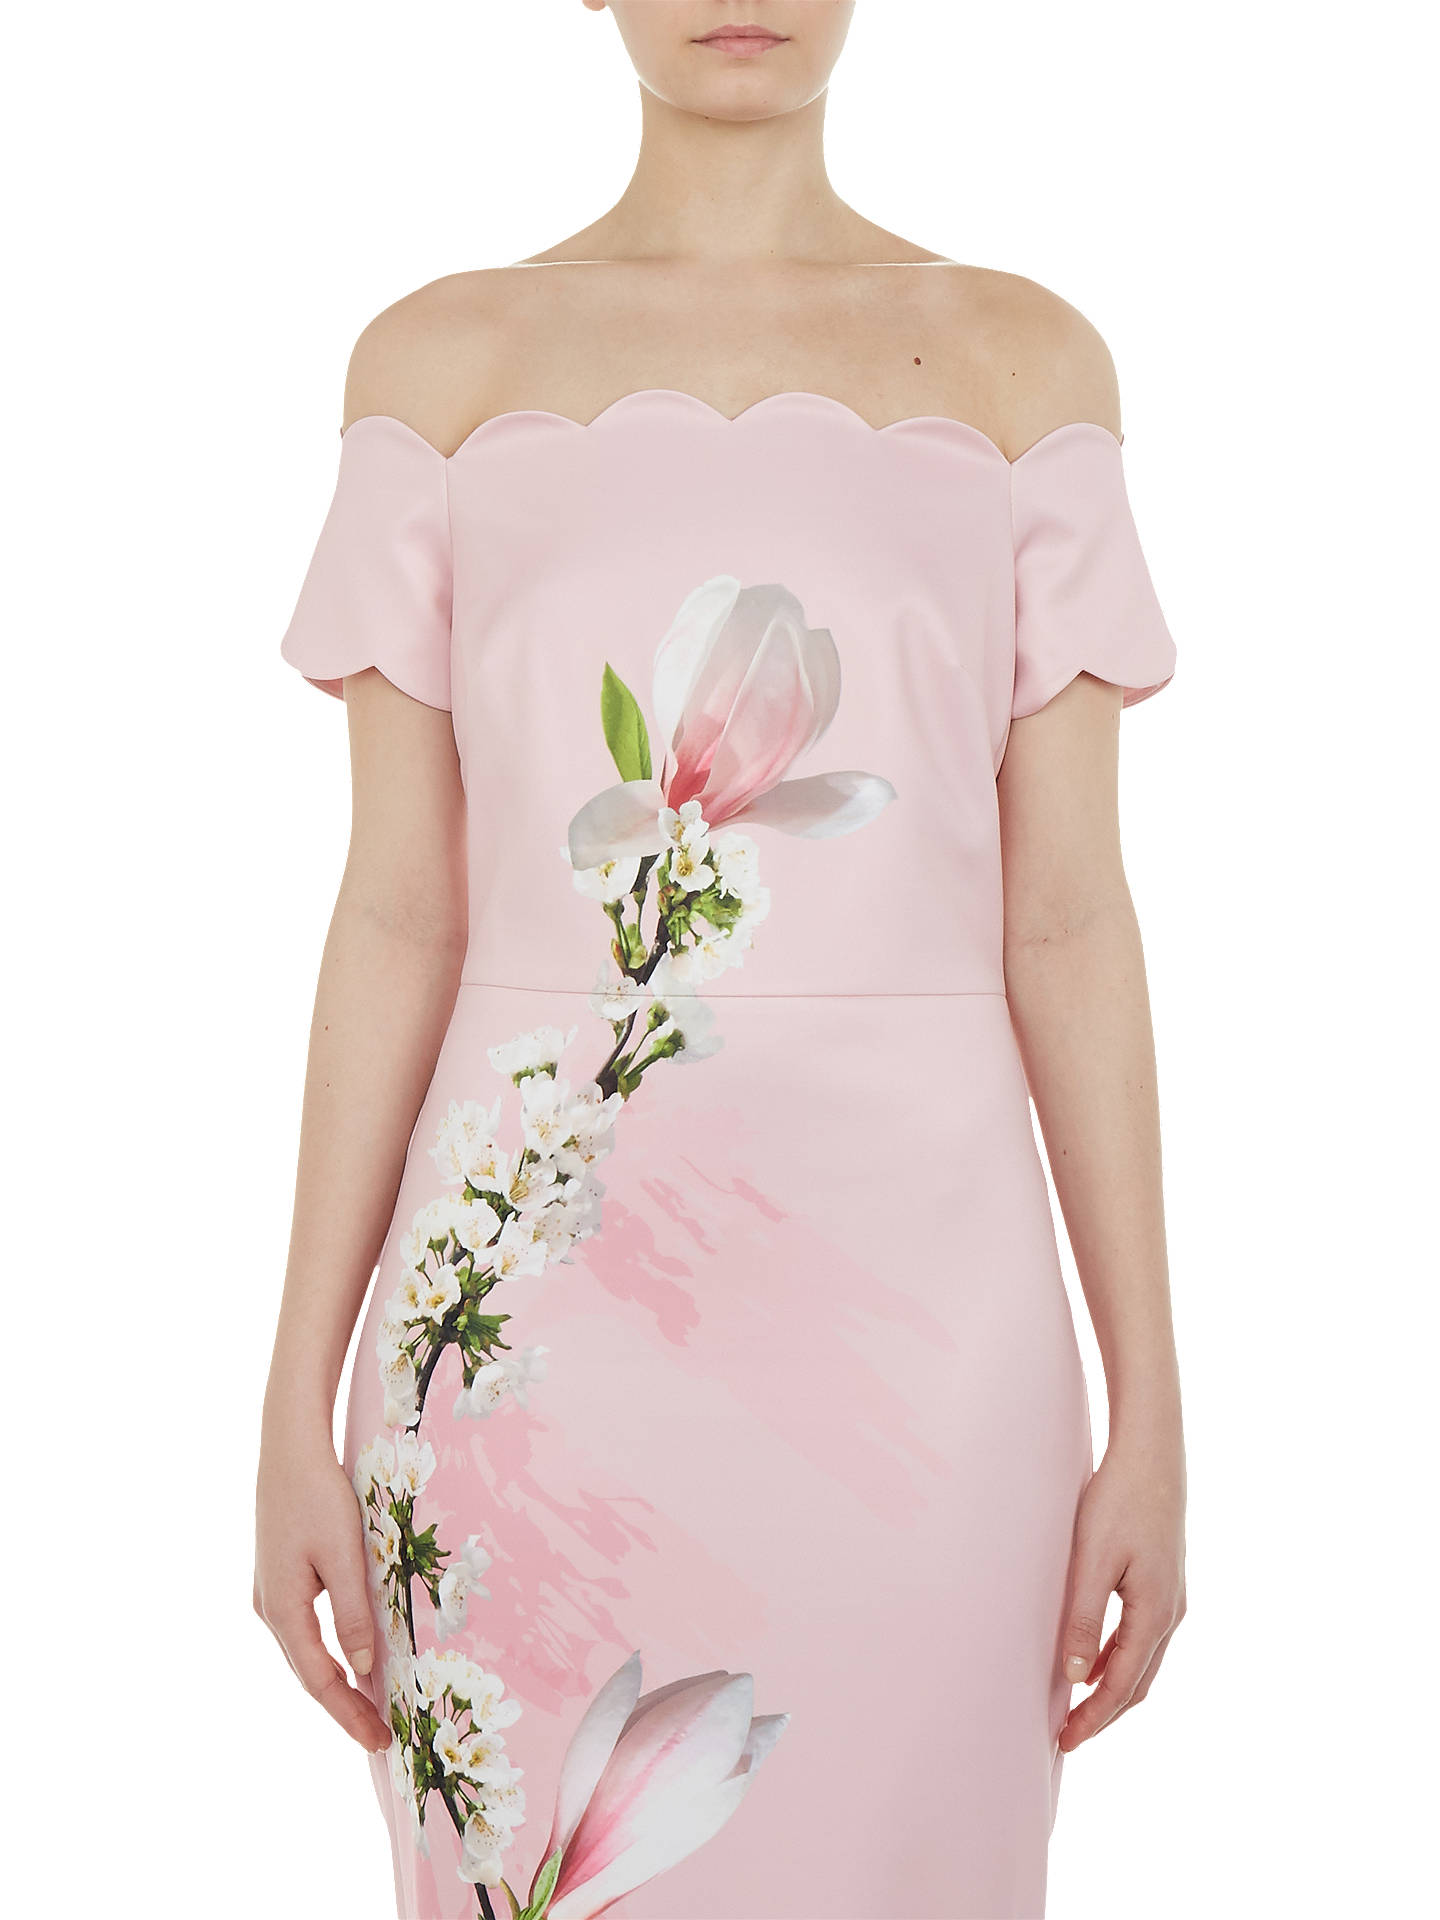 BuyTed Baker Olyva Scalloped Bodycon Dress, Pink, 0 Online at johnlewis.com